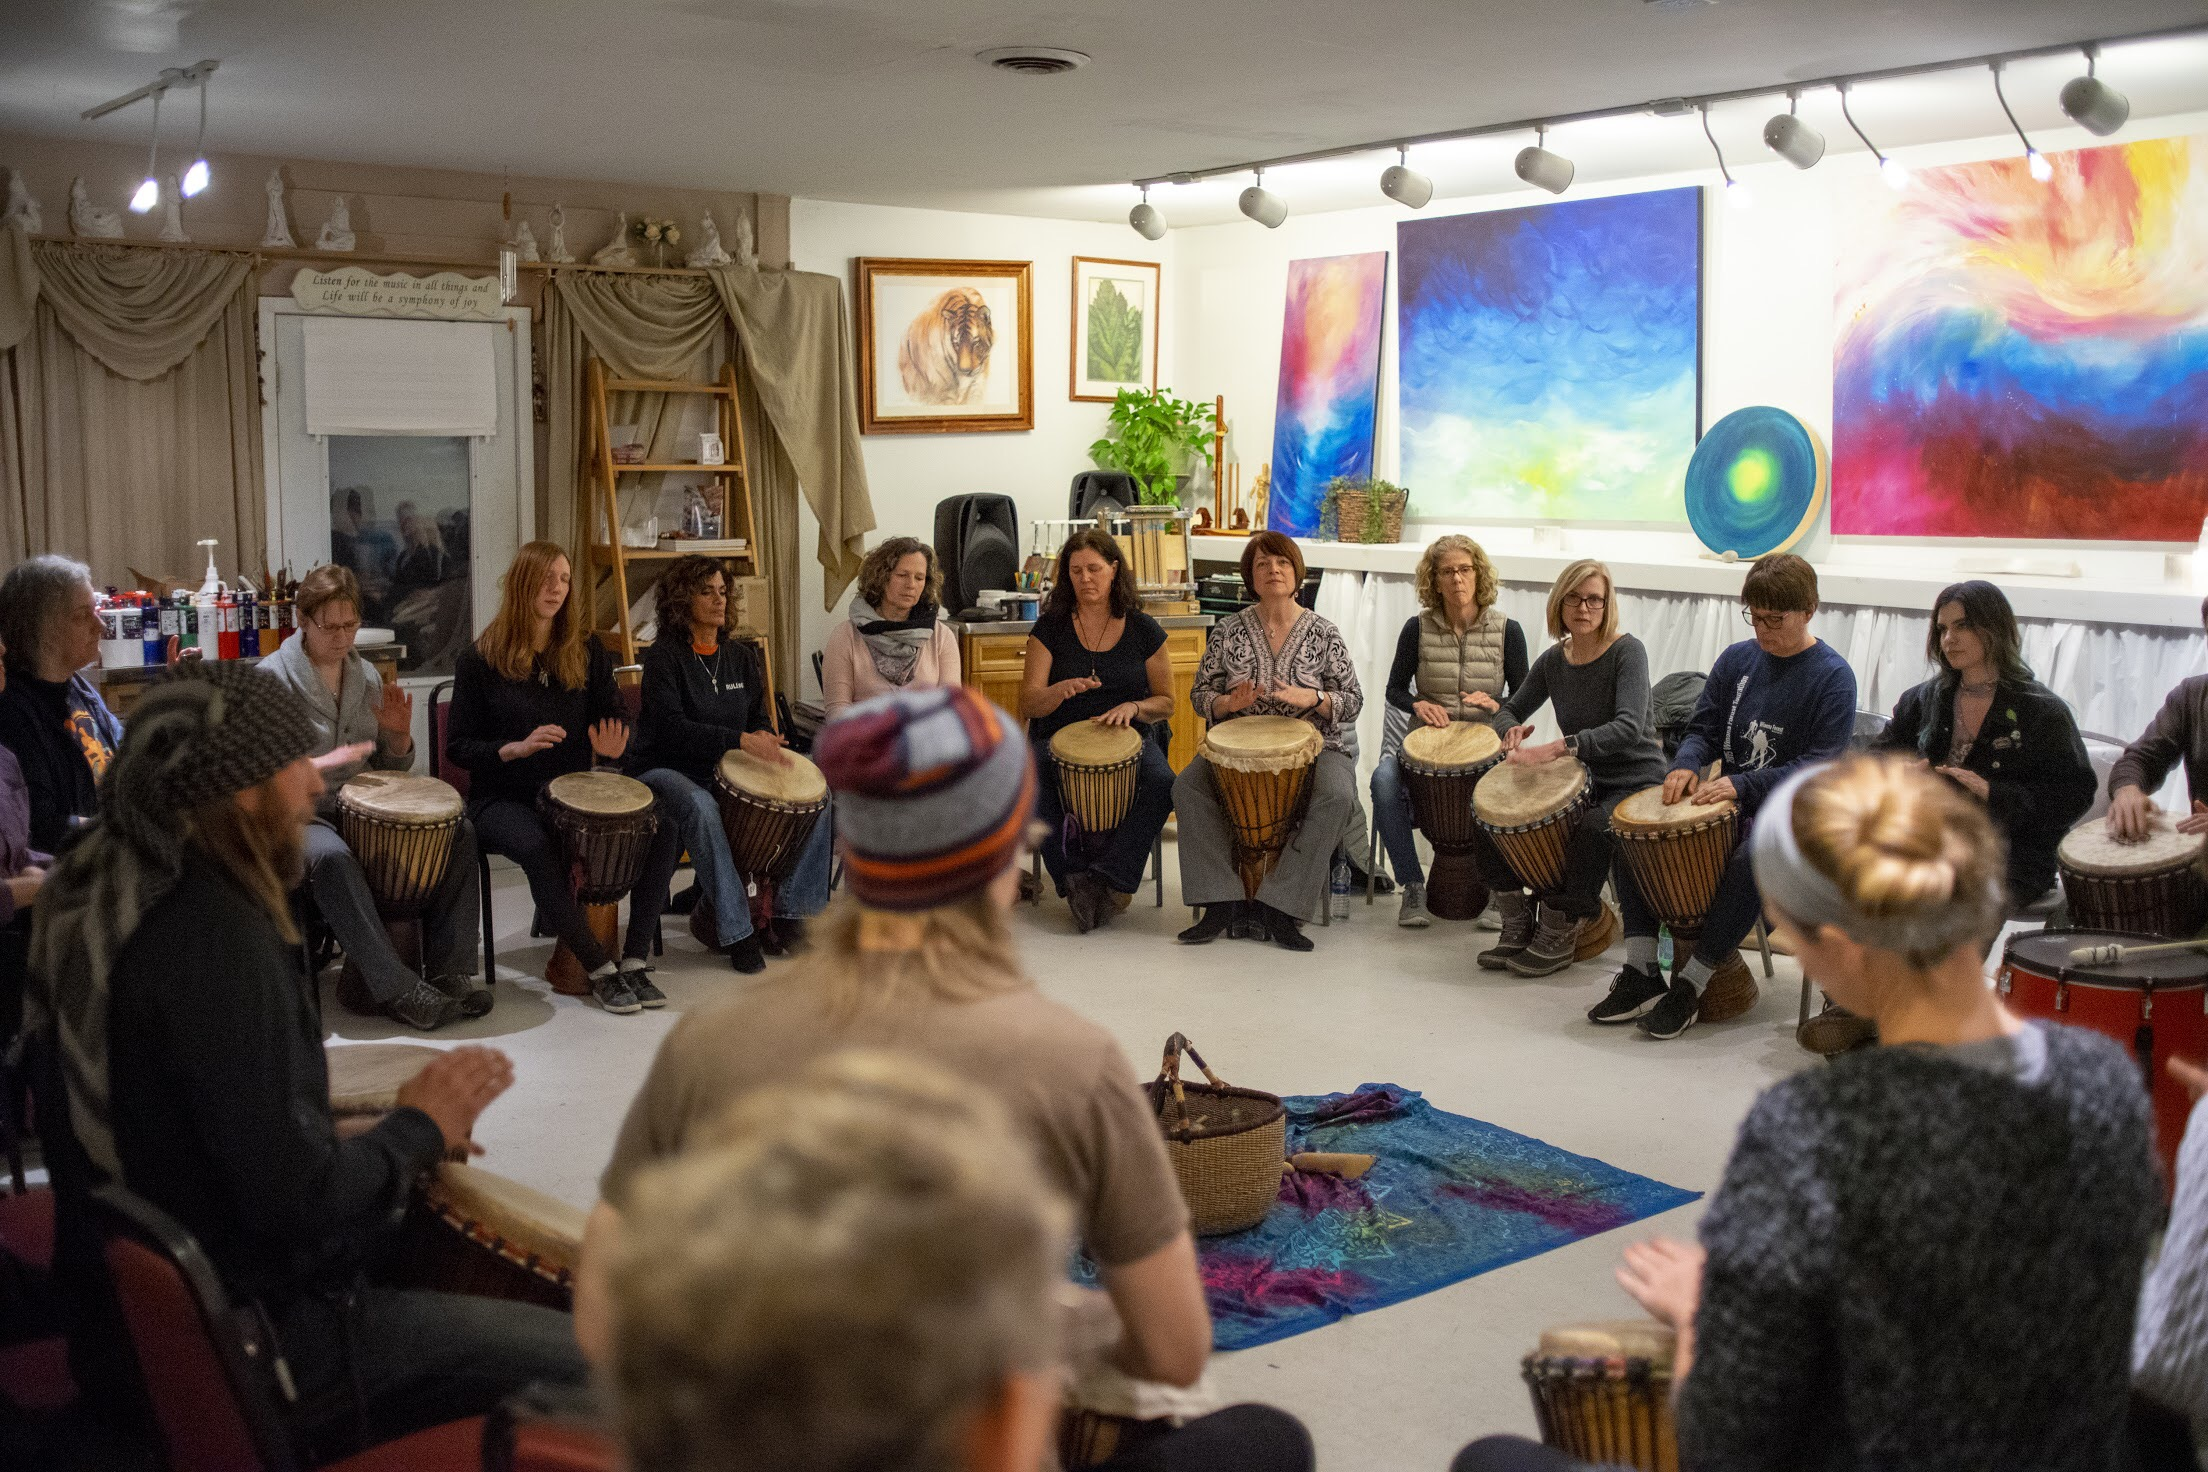 - MONTHLY DRUM CIRCLES SINCE 2007